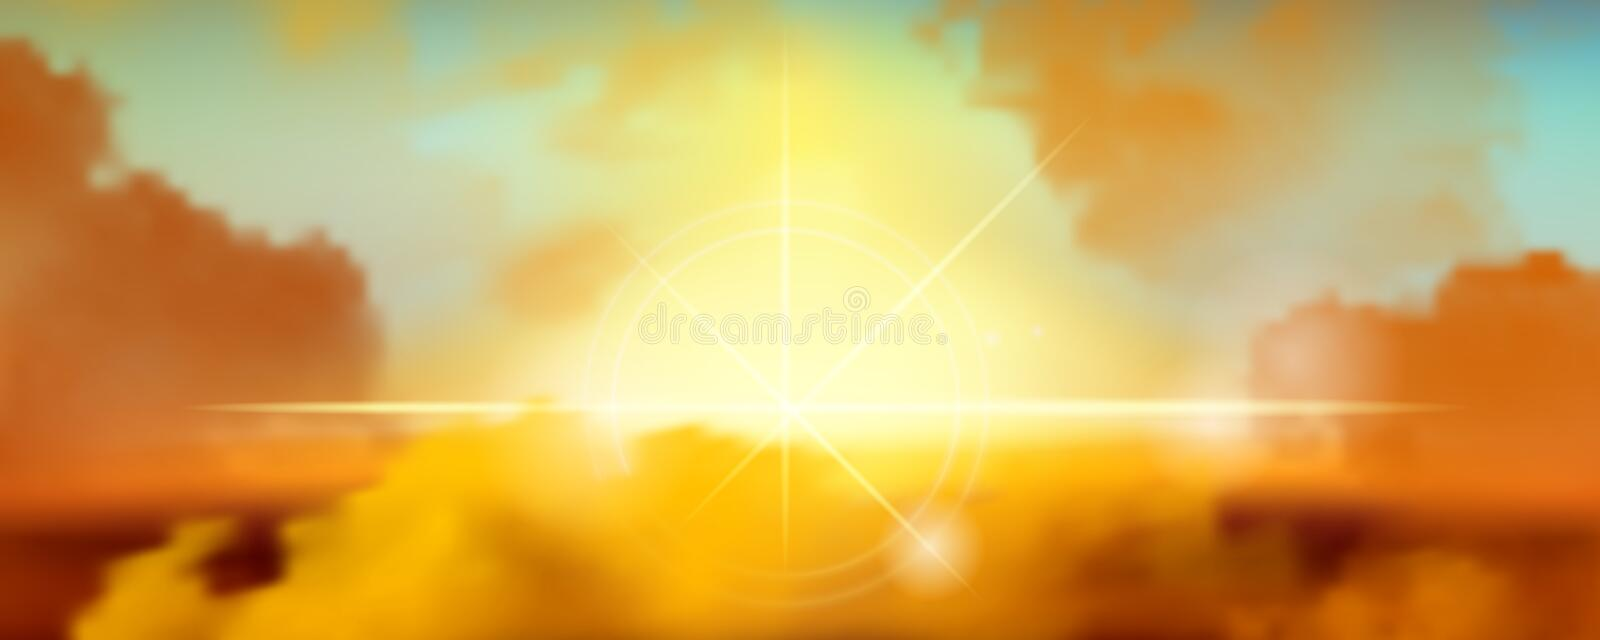 The sky is changing, causing the clouds to have a hot colors tone and the sun shining from the cloudy. royalty free illustration